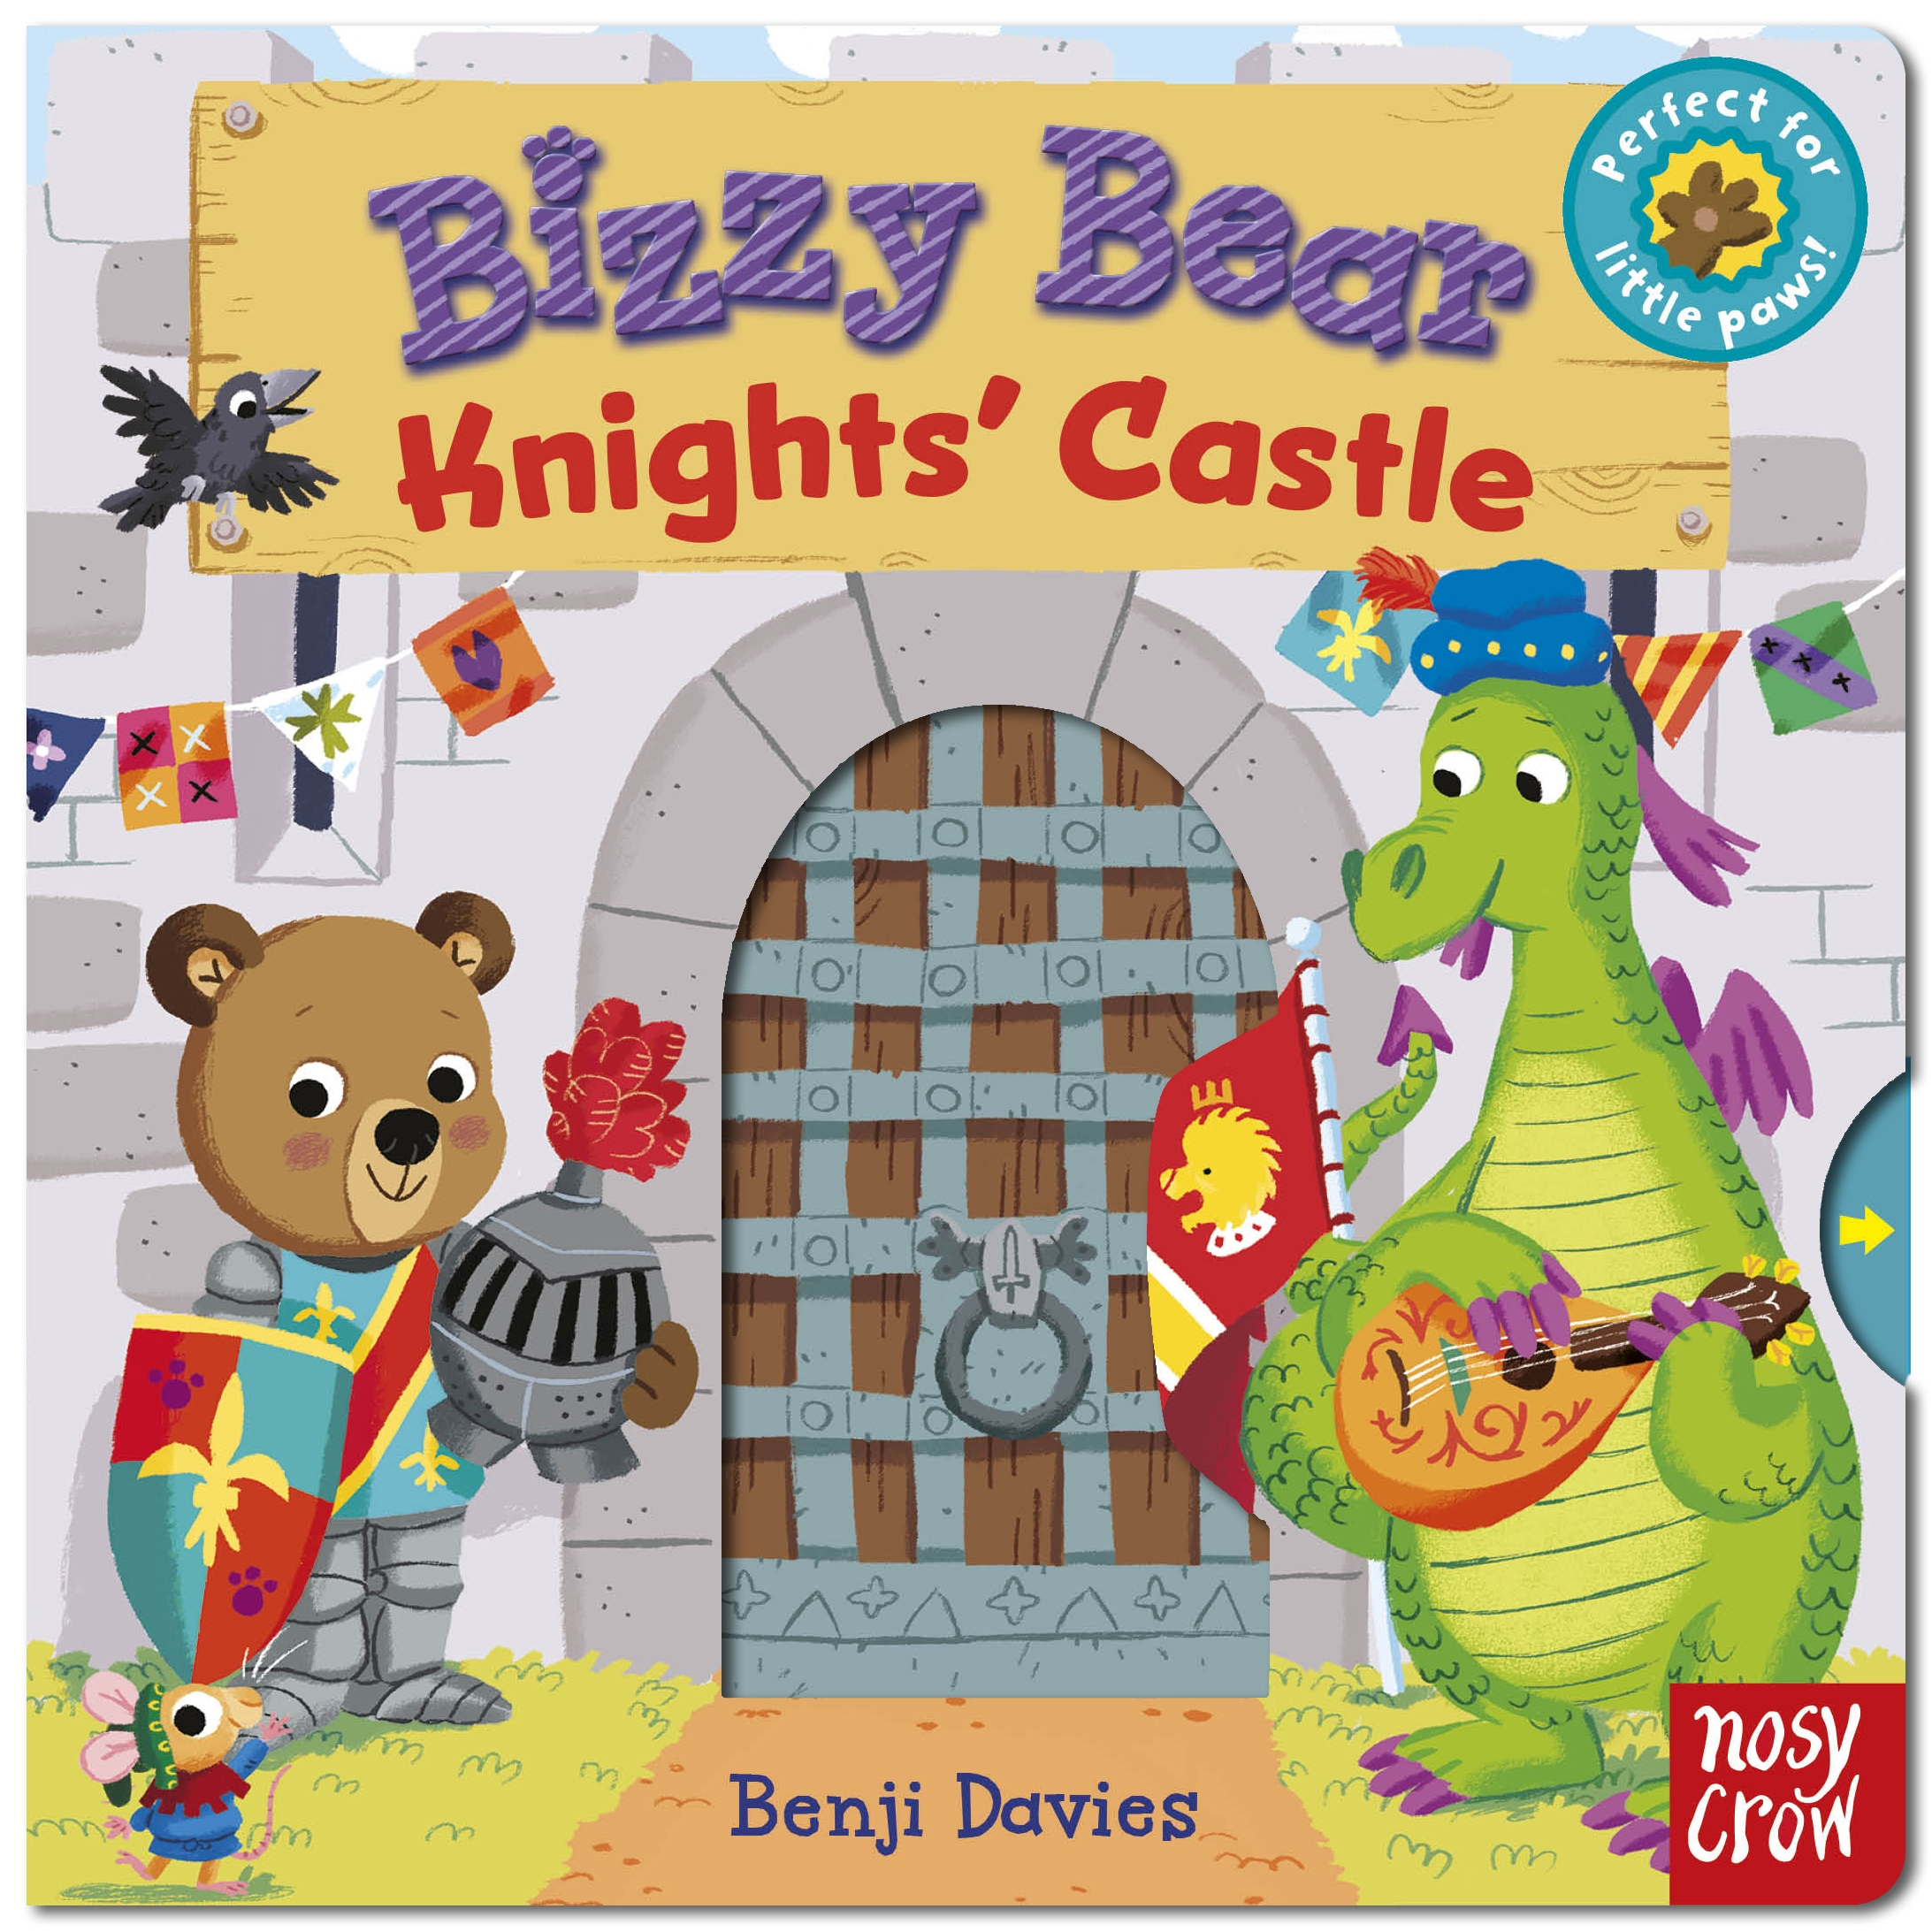 Bizzy Bear: Knights' Castle tuesdays at the castle